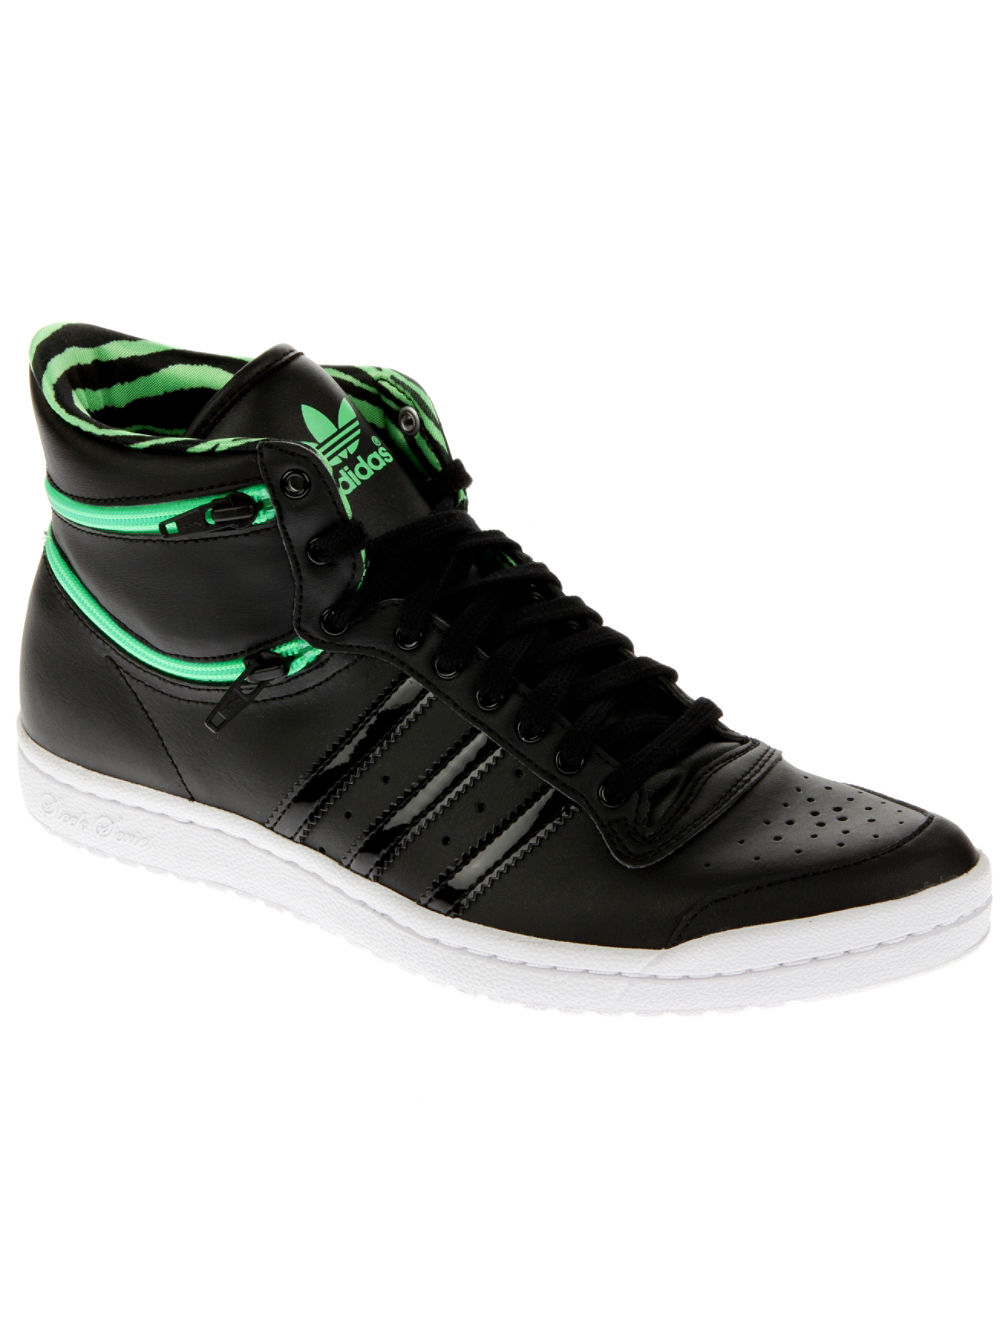 Sneakers adidas Originals Top Ten Hi Sleek Sneakers